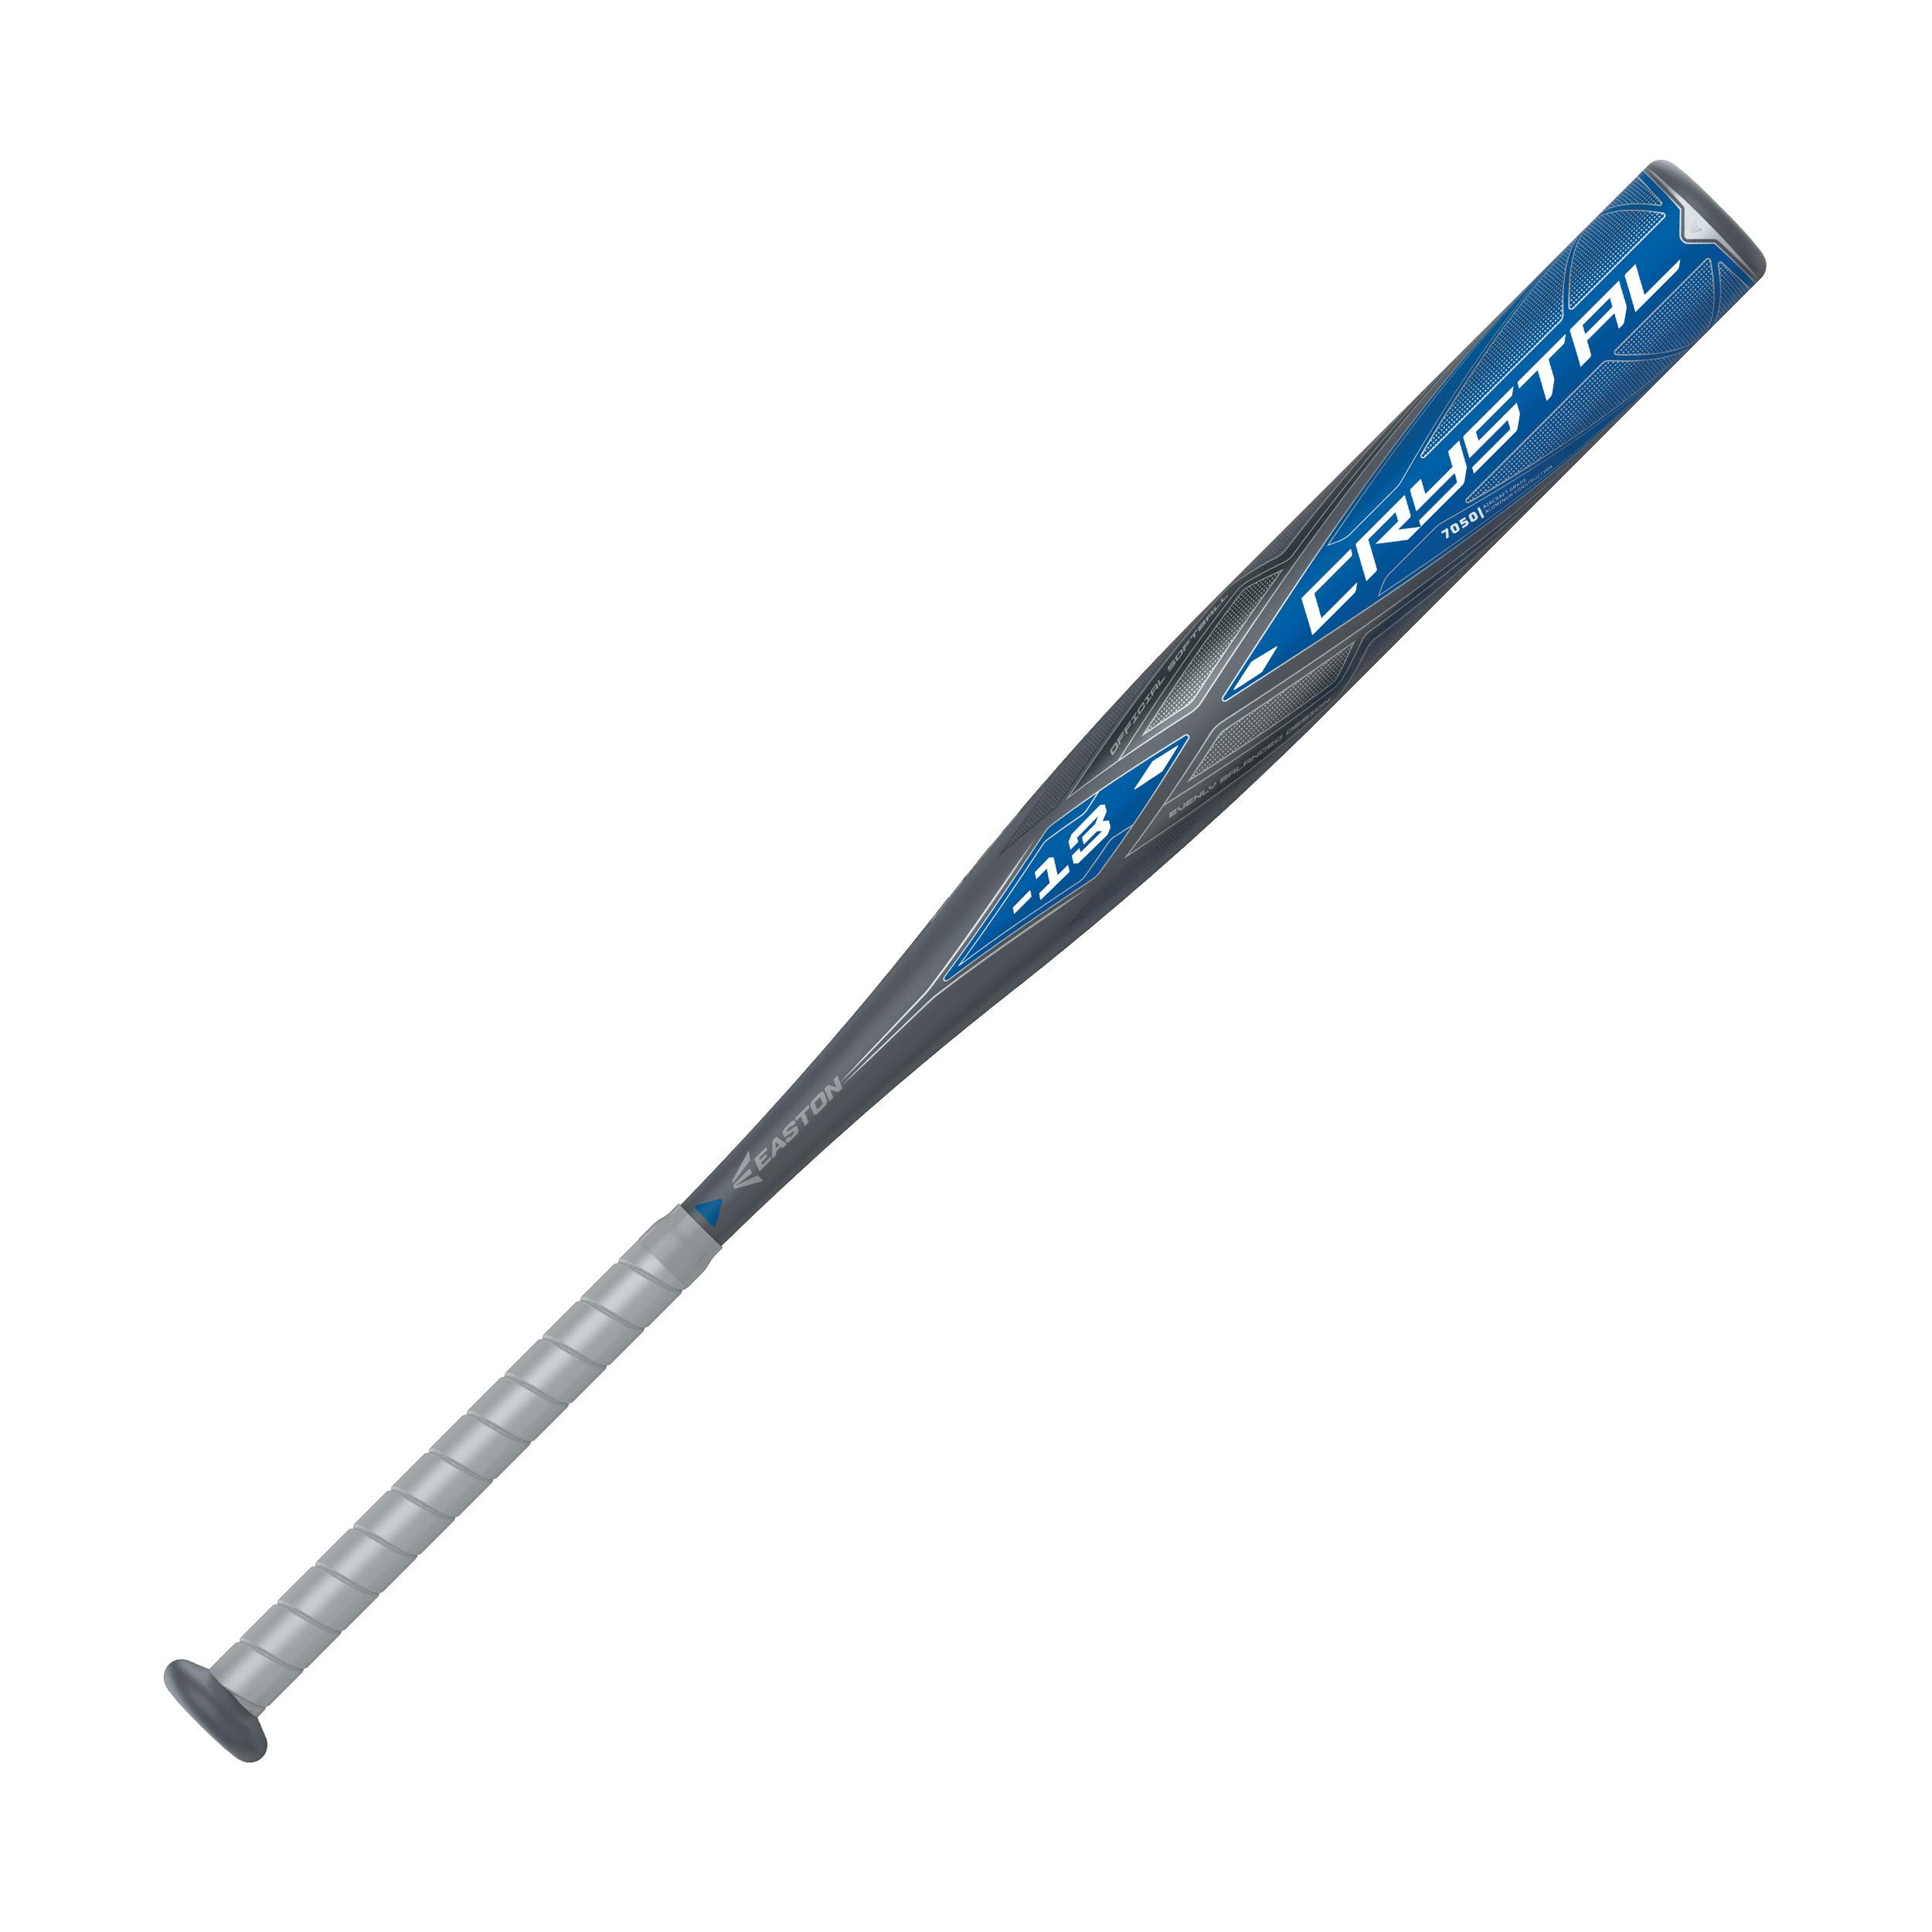 EASTON CRYSTAL -13 Fastpitch Softball Bat | 2020 | 1 Piece Aluminum | 7050 Aircraft Alloy For Fast Swing Speed | Ultra Thin Handle | Pro Style End Cap | Comfort Grip | Approved All Fields by Easton